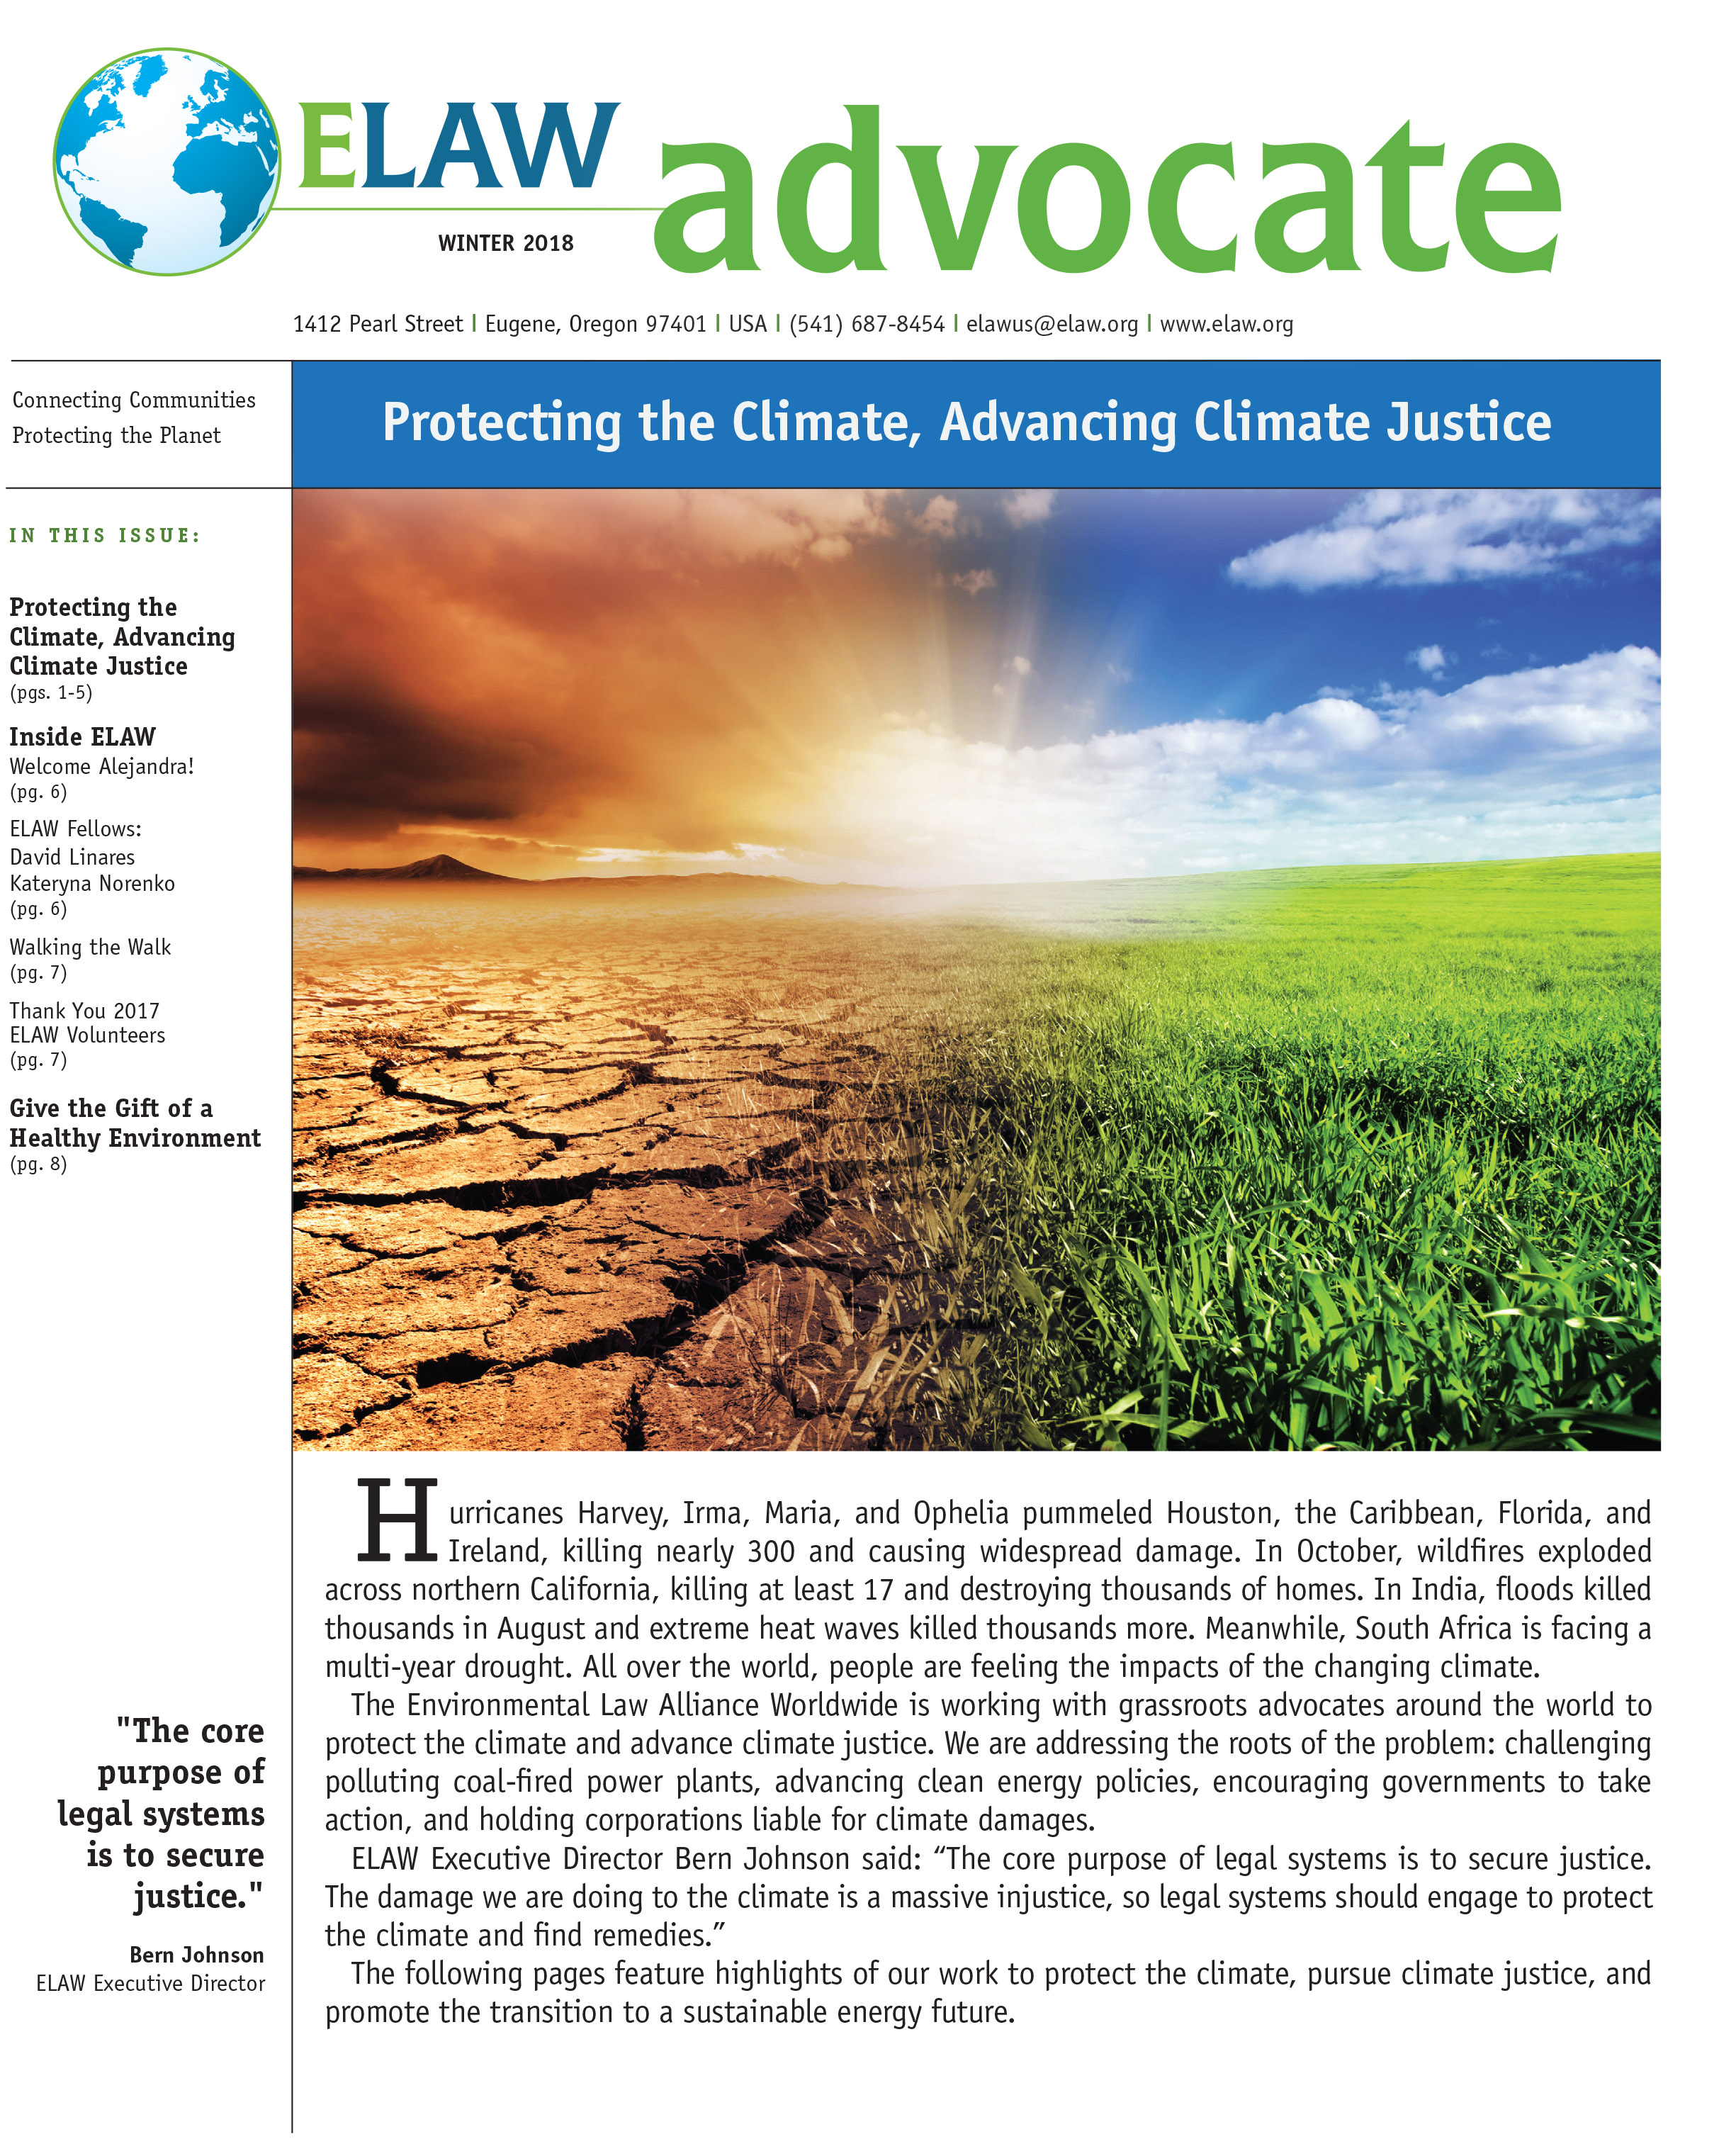 ELAW Advocate, Winter 2018